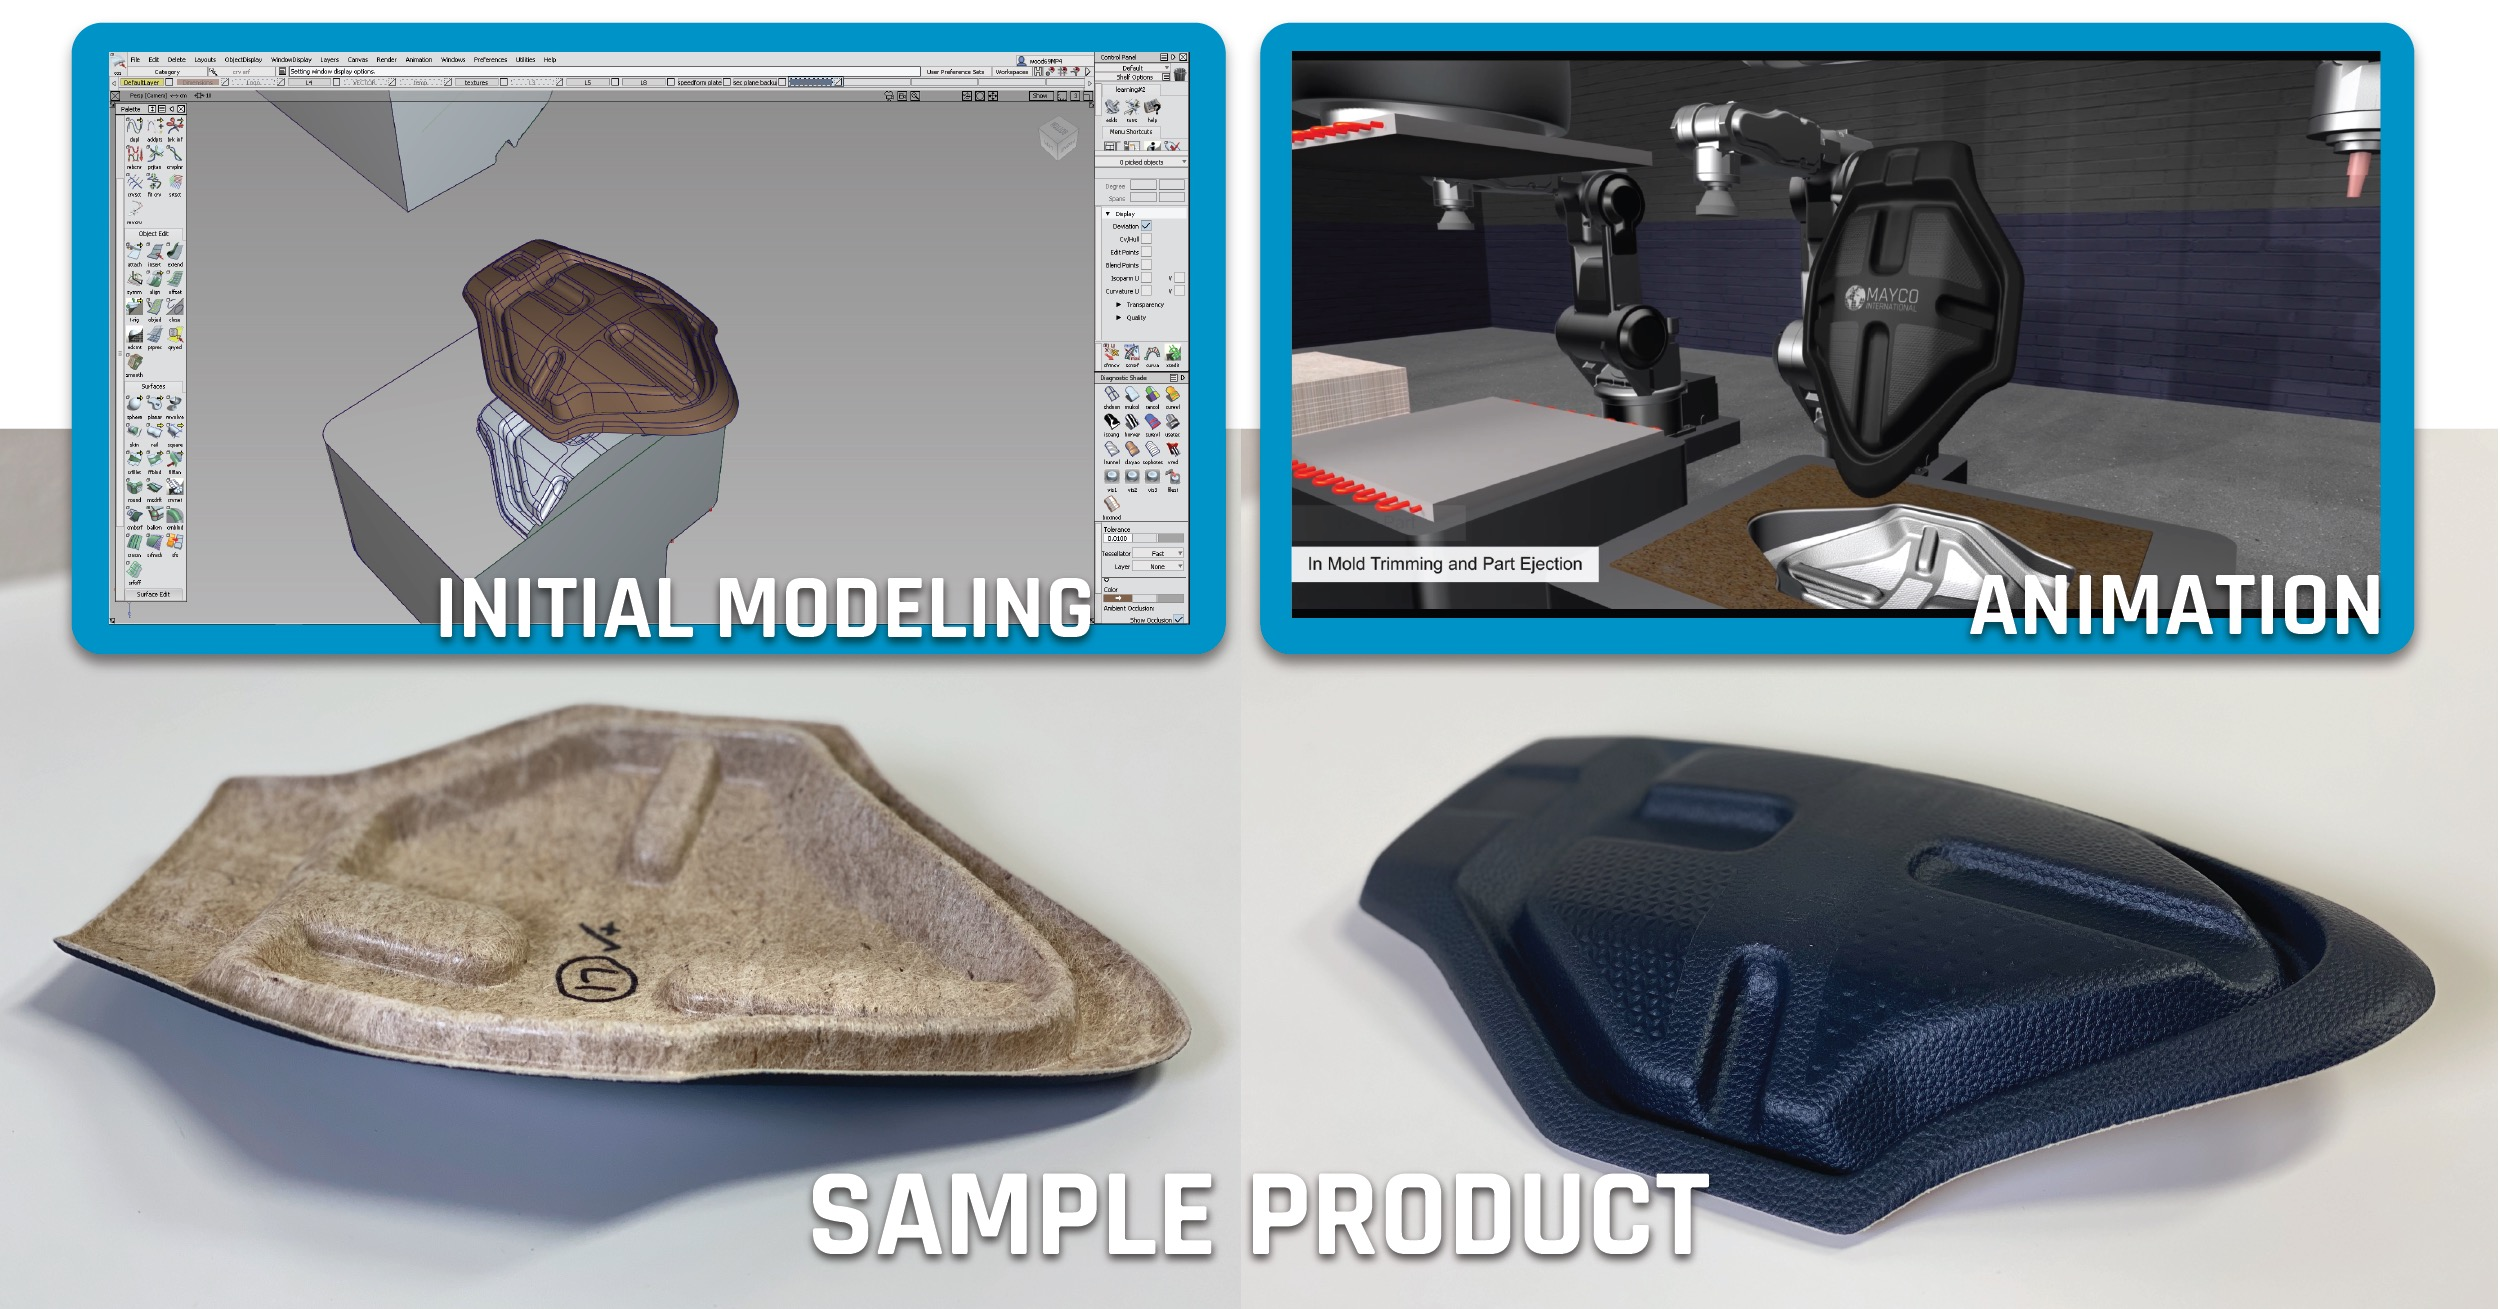 In-Mold Coating process and industrial design